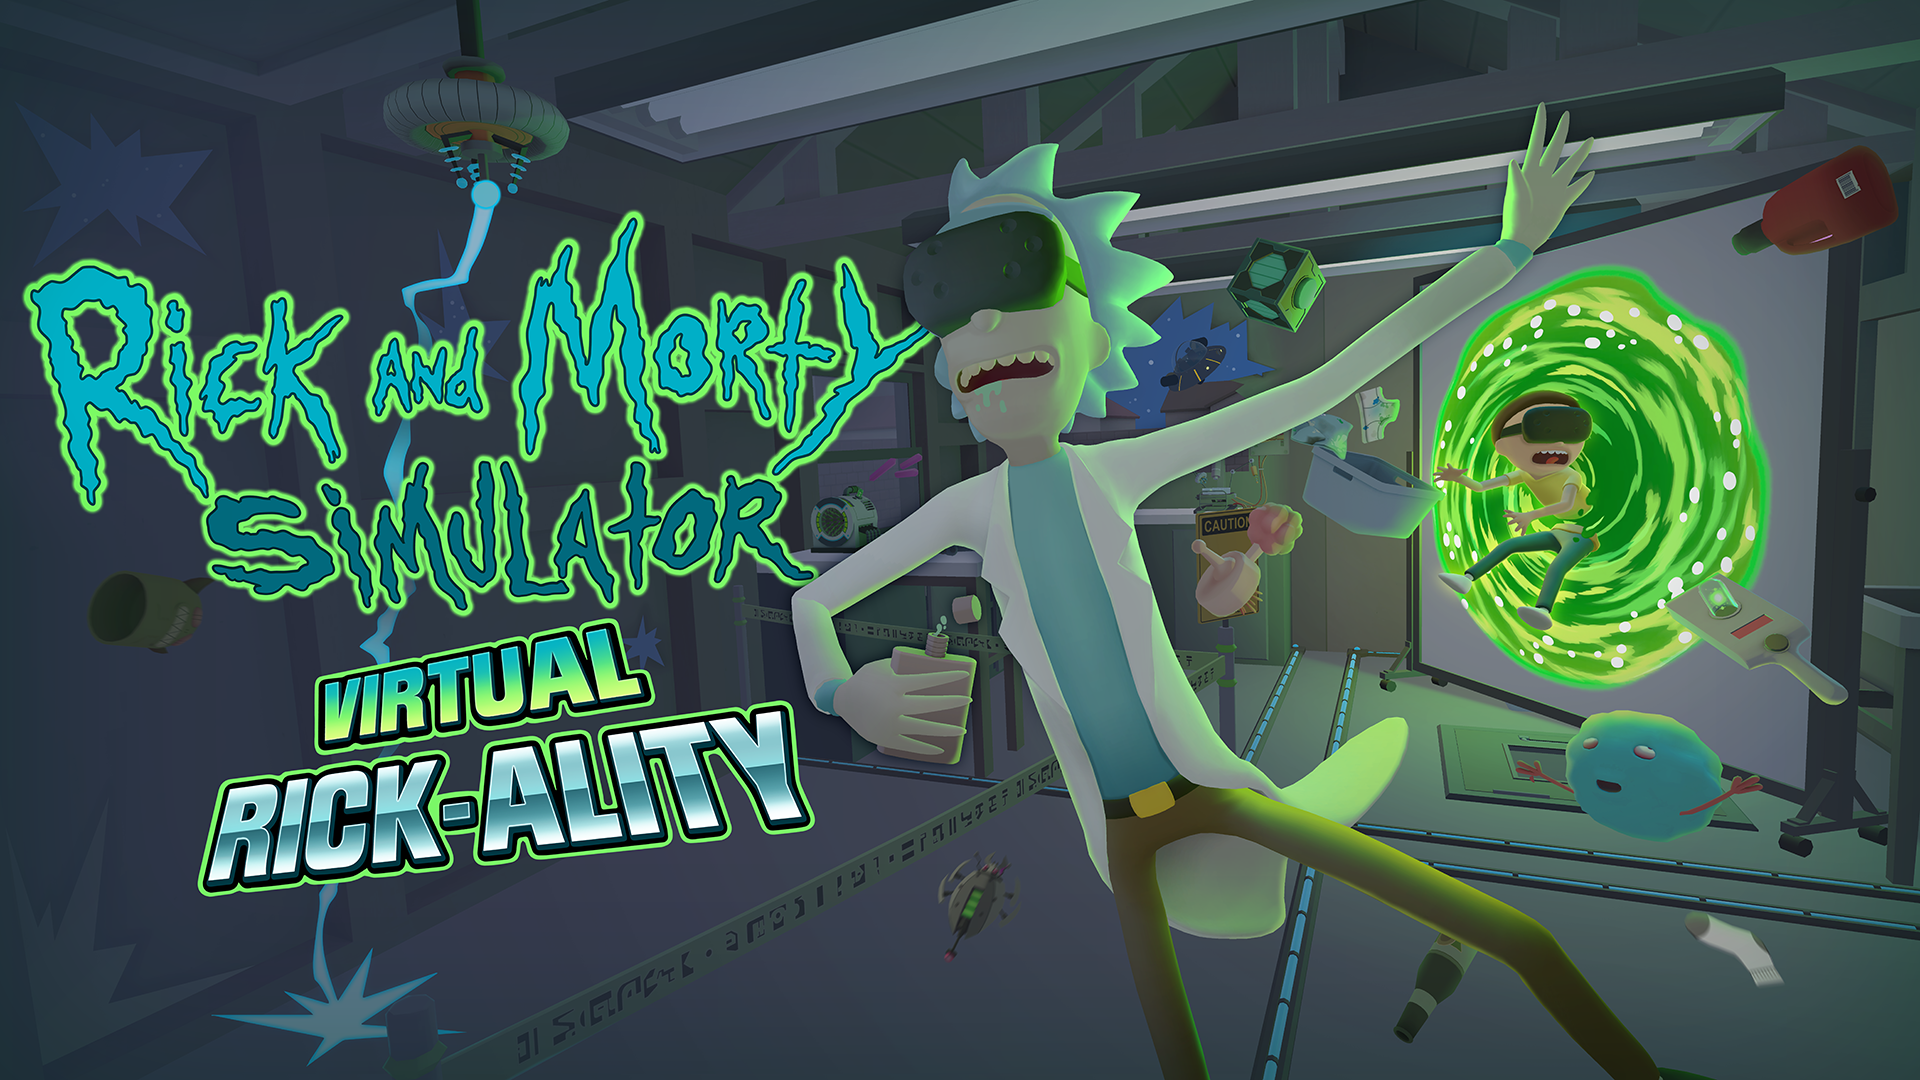 Get Schwifty Rick And Morty Virtual Rick Ality Now Available